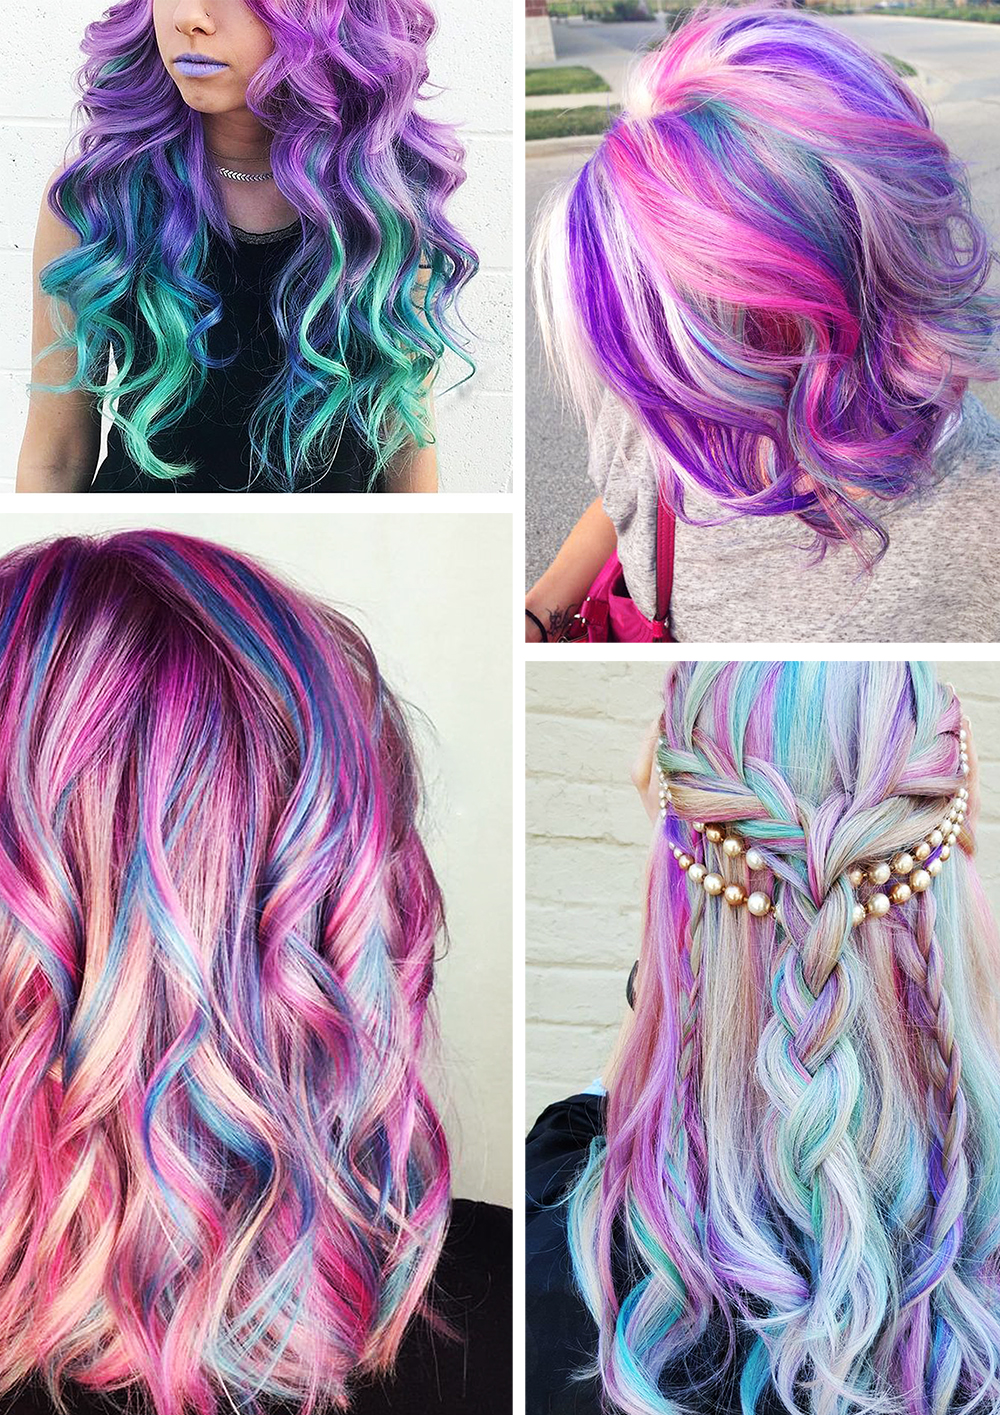 Latest Fashion Trends, Fashion, Style, Unicorn hair colour, Photography-6